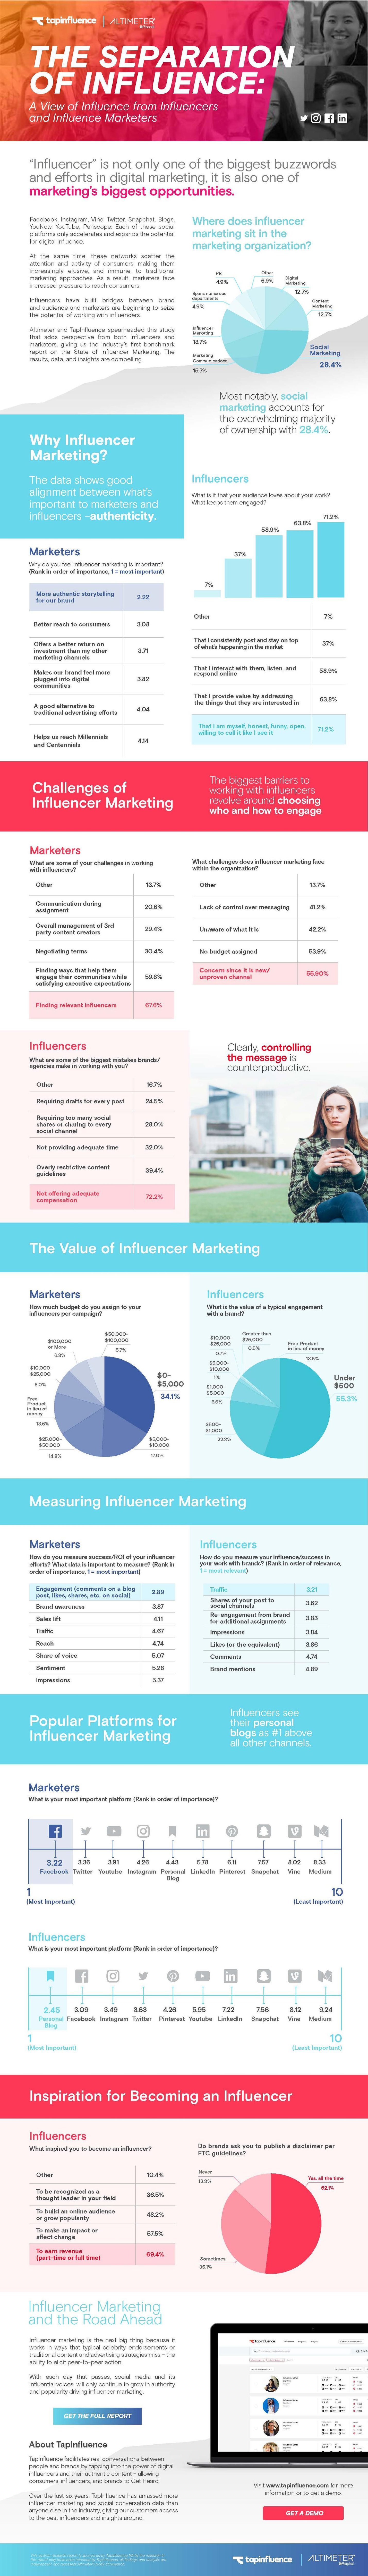 How to generate more sales from an ambassador strategy according to tapinfluence 676 of marketers publicscrutiny Choice Image